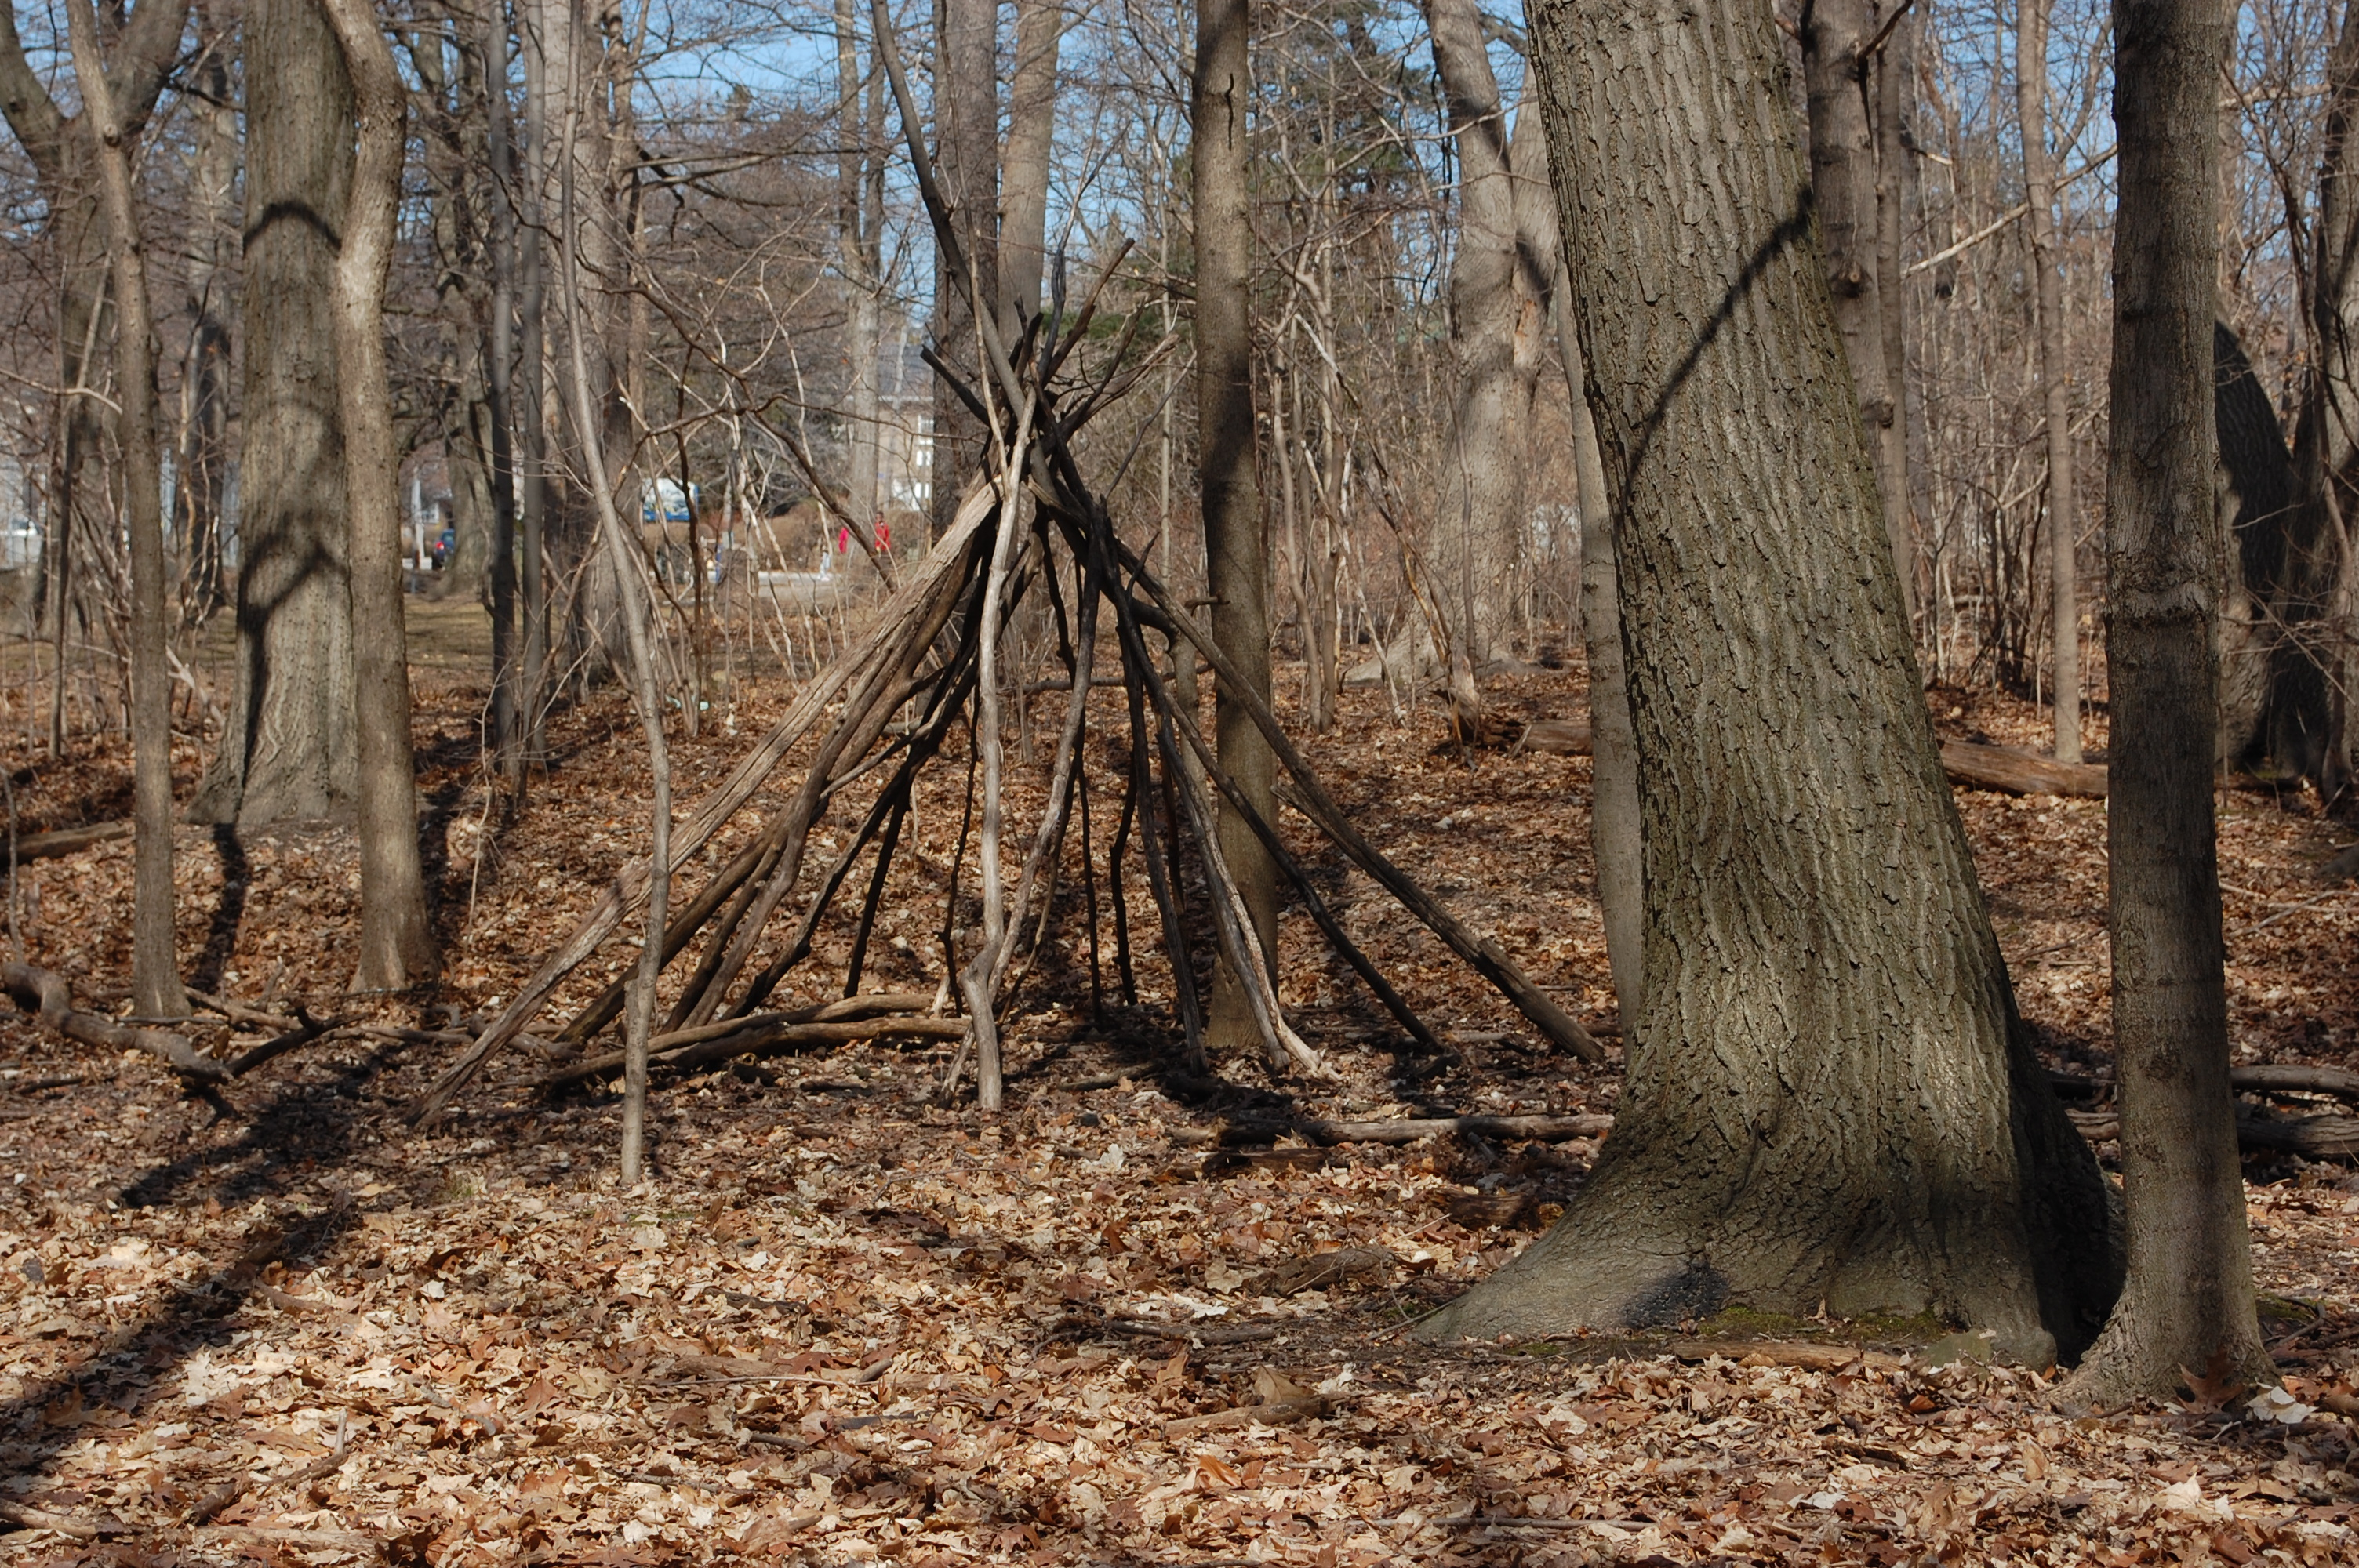 Wigwam in Ravine Bottom Lands